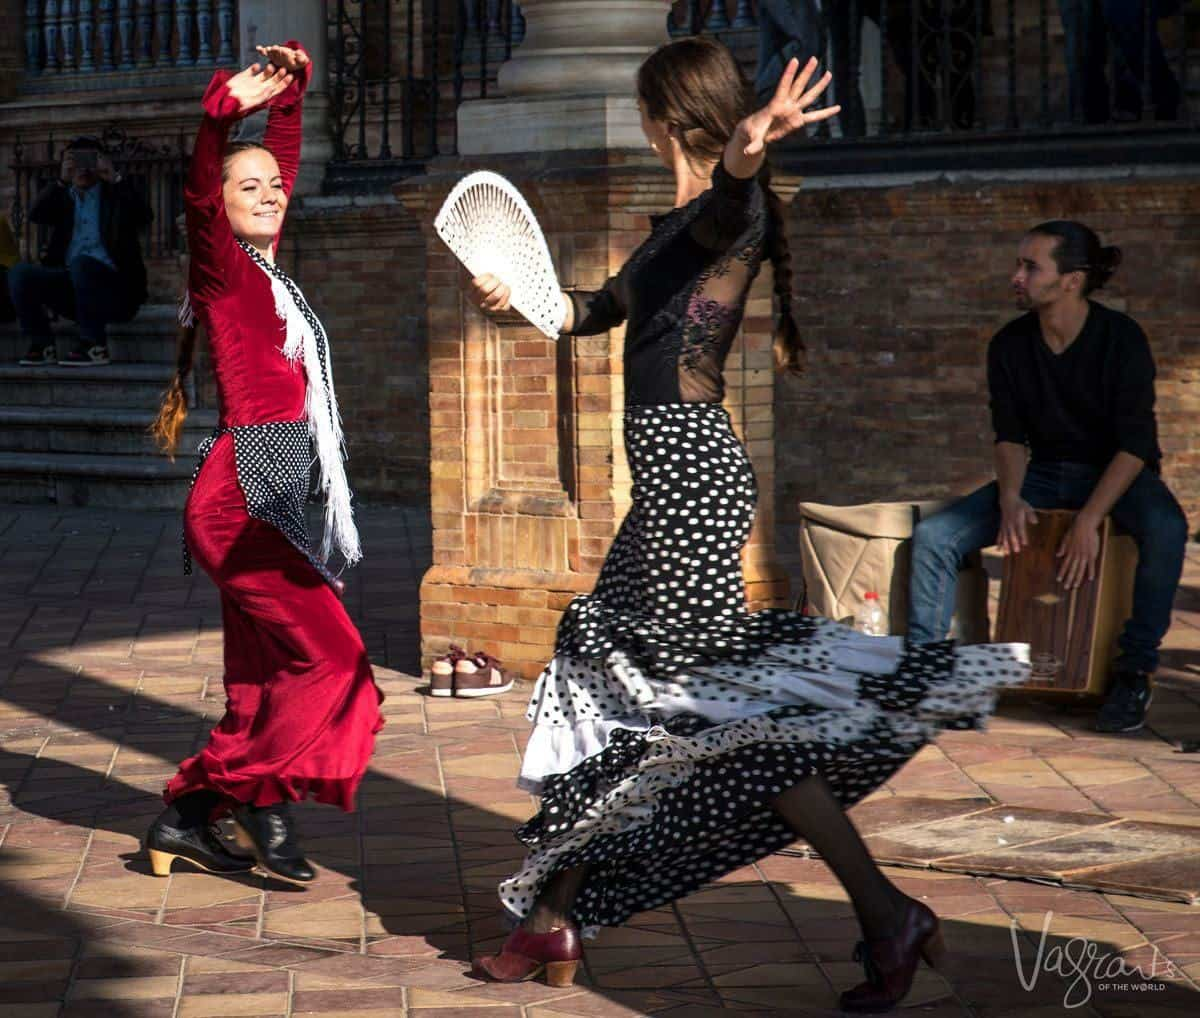 2 girls dancing the Flamenco in Seville Spain.